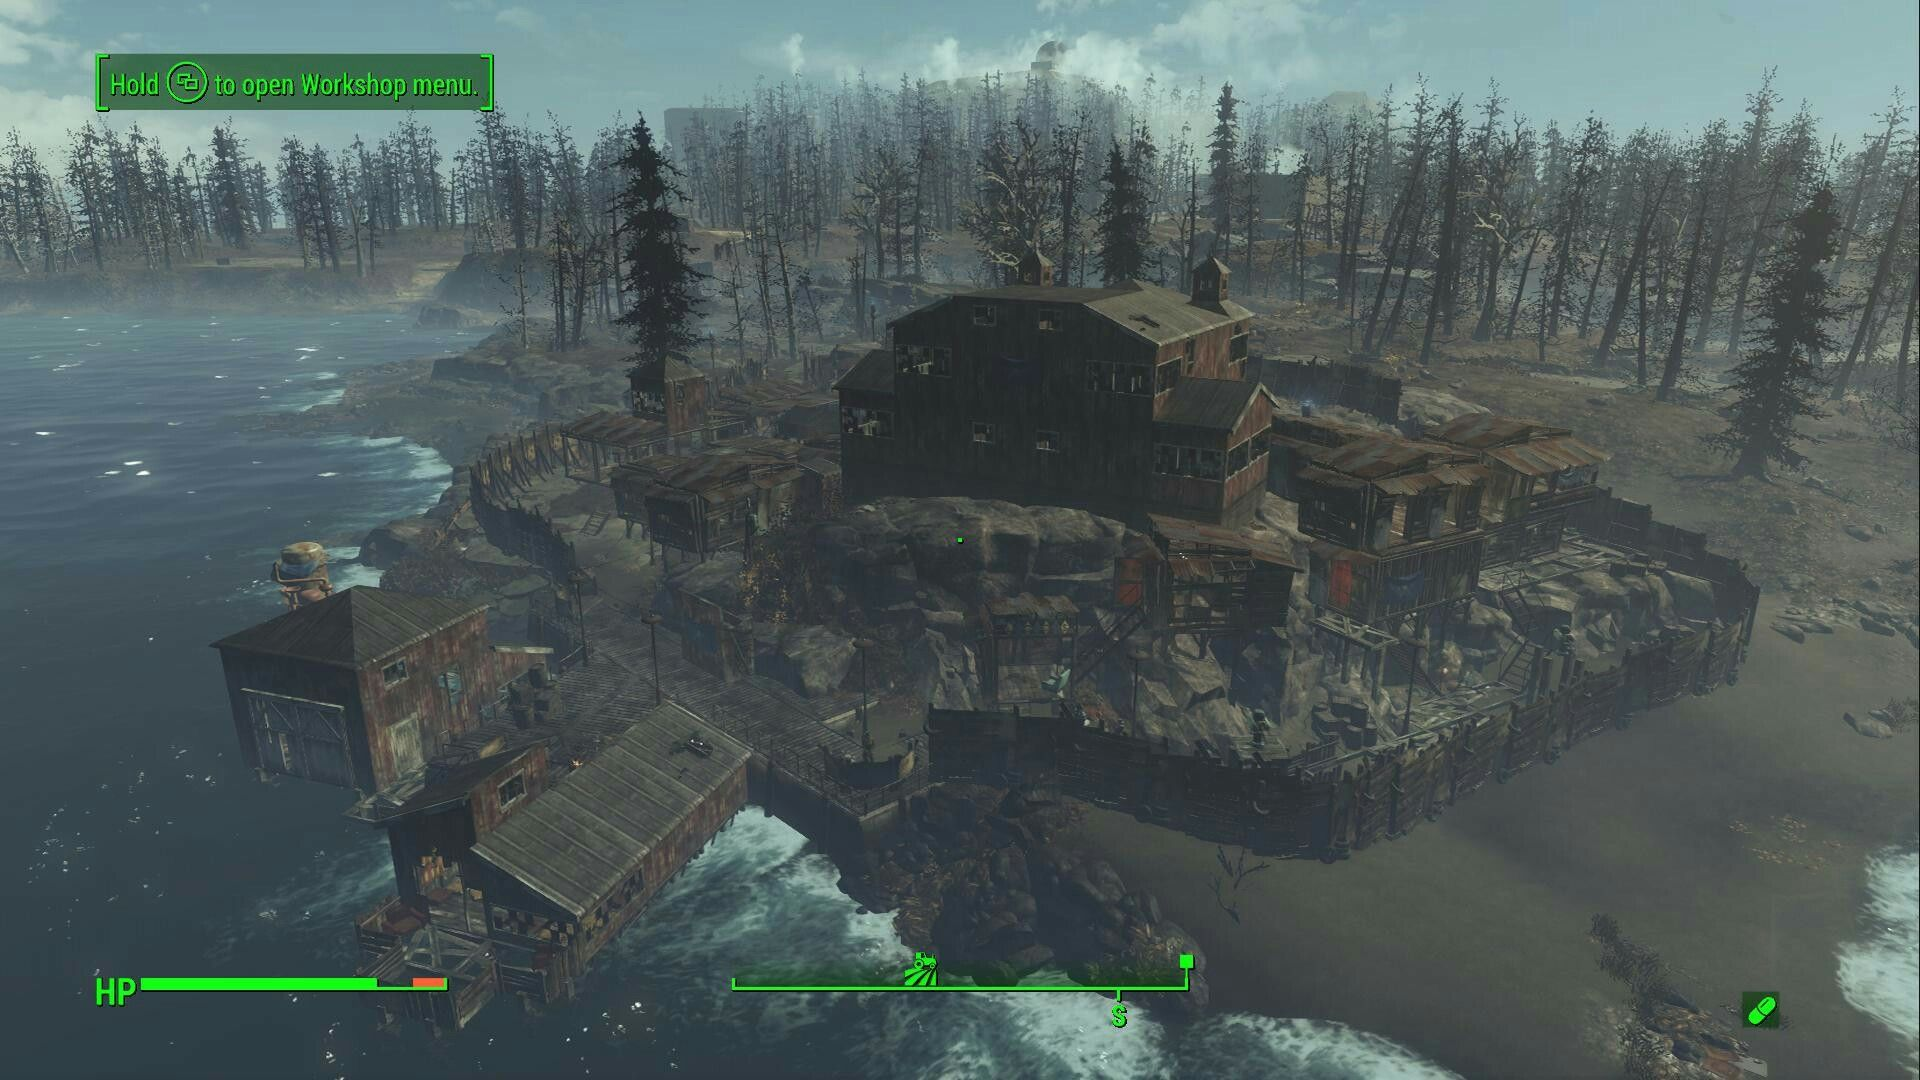 Pin By Tree On Fallout 4 Settlement Ideas Fallout Settlement Fallout 4 Settlement Ideas Fallout